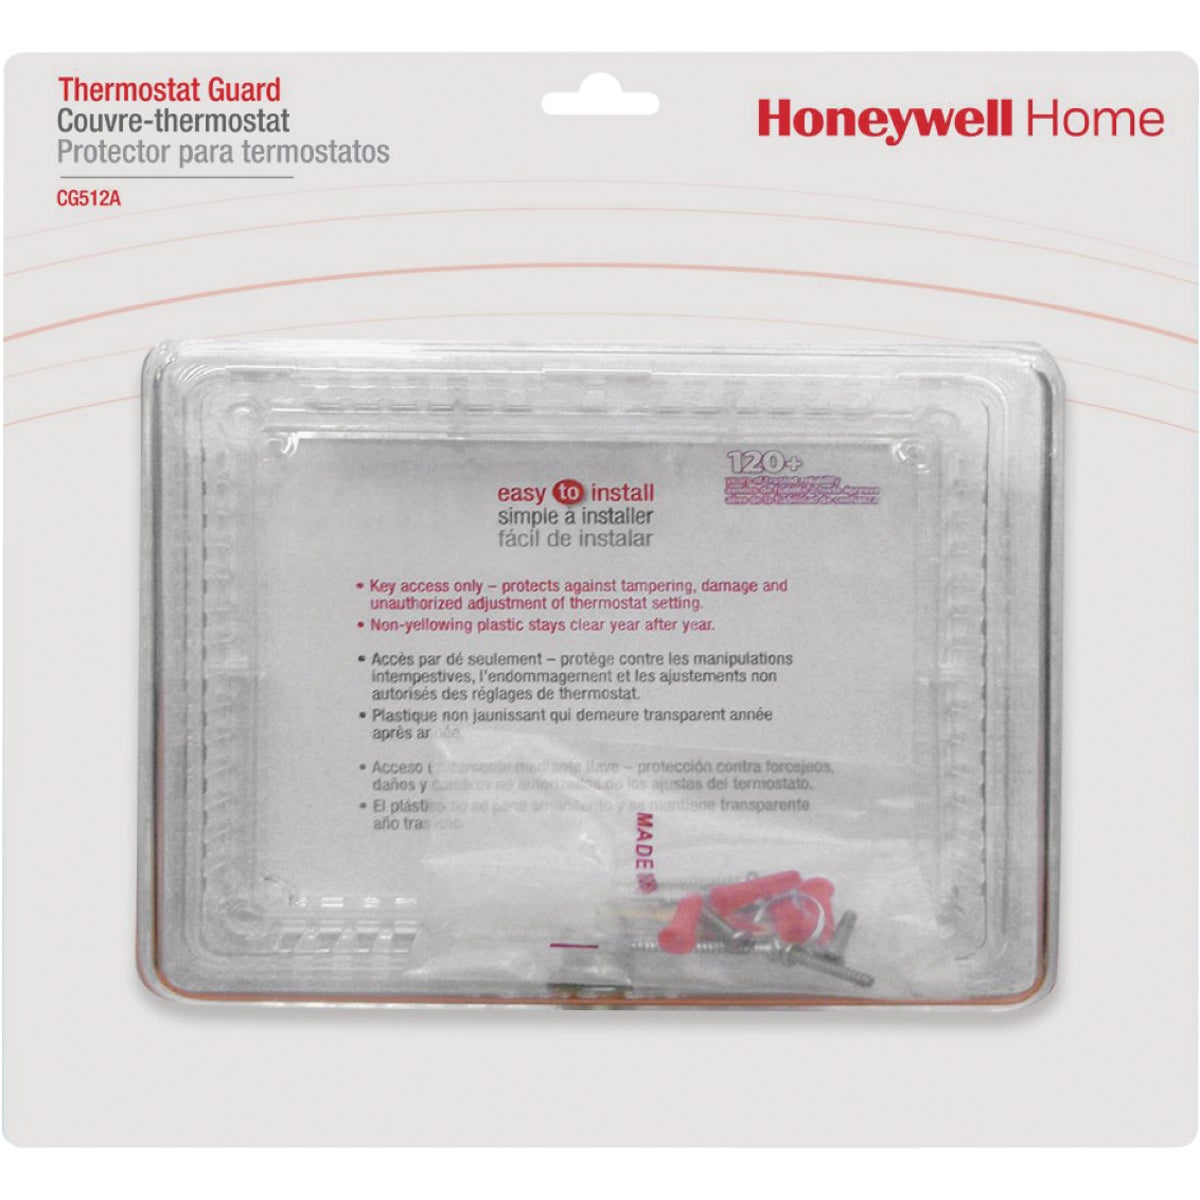 LG THERMSTAT COVER/GUARD - CG512A1009 by Honeywell Internatl